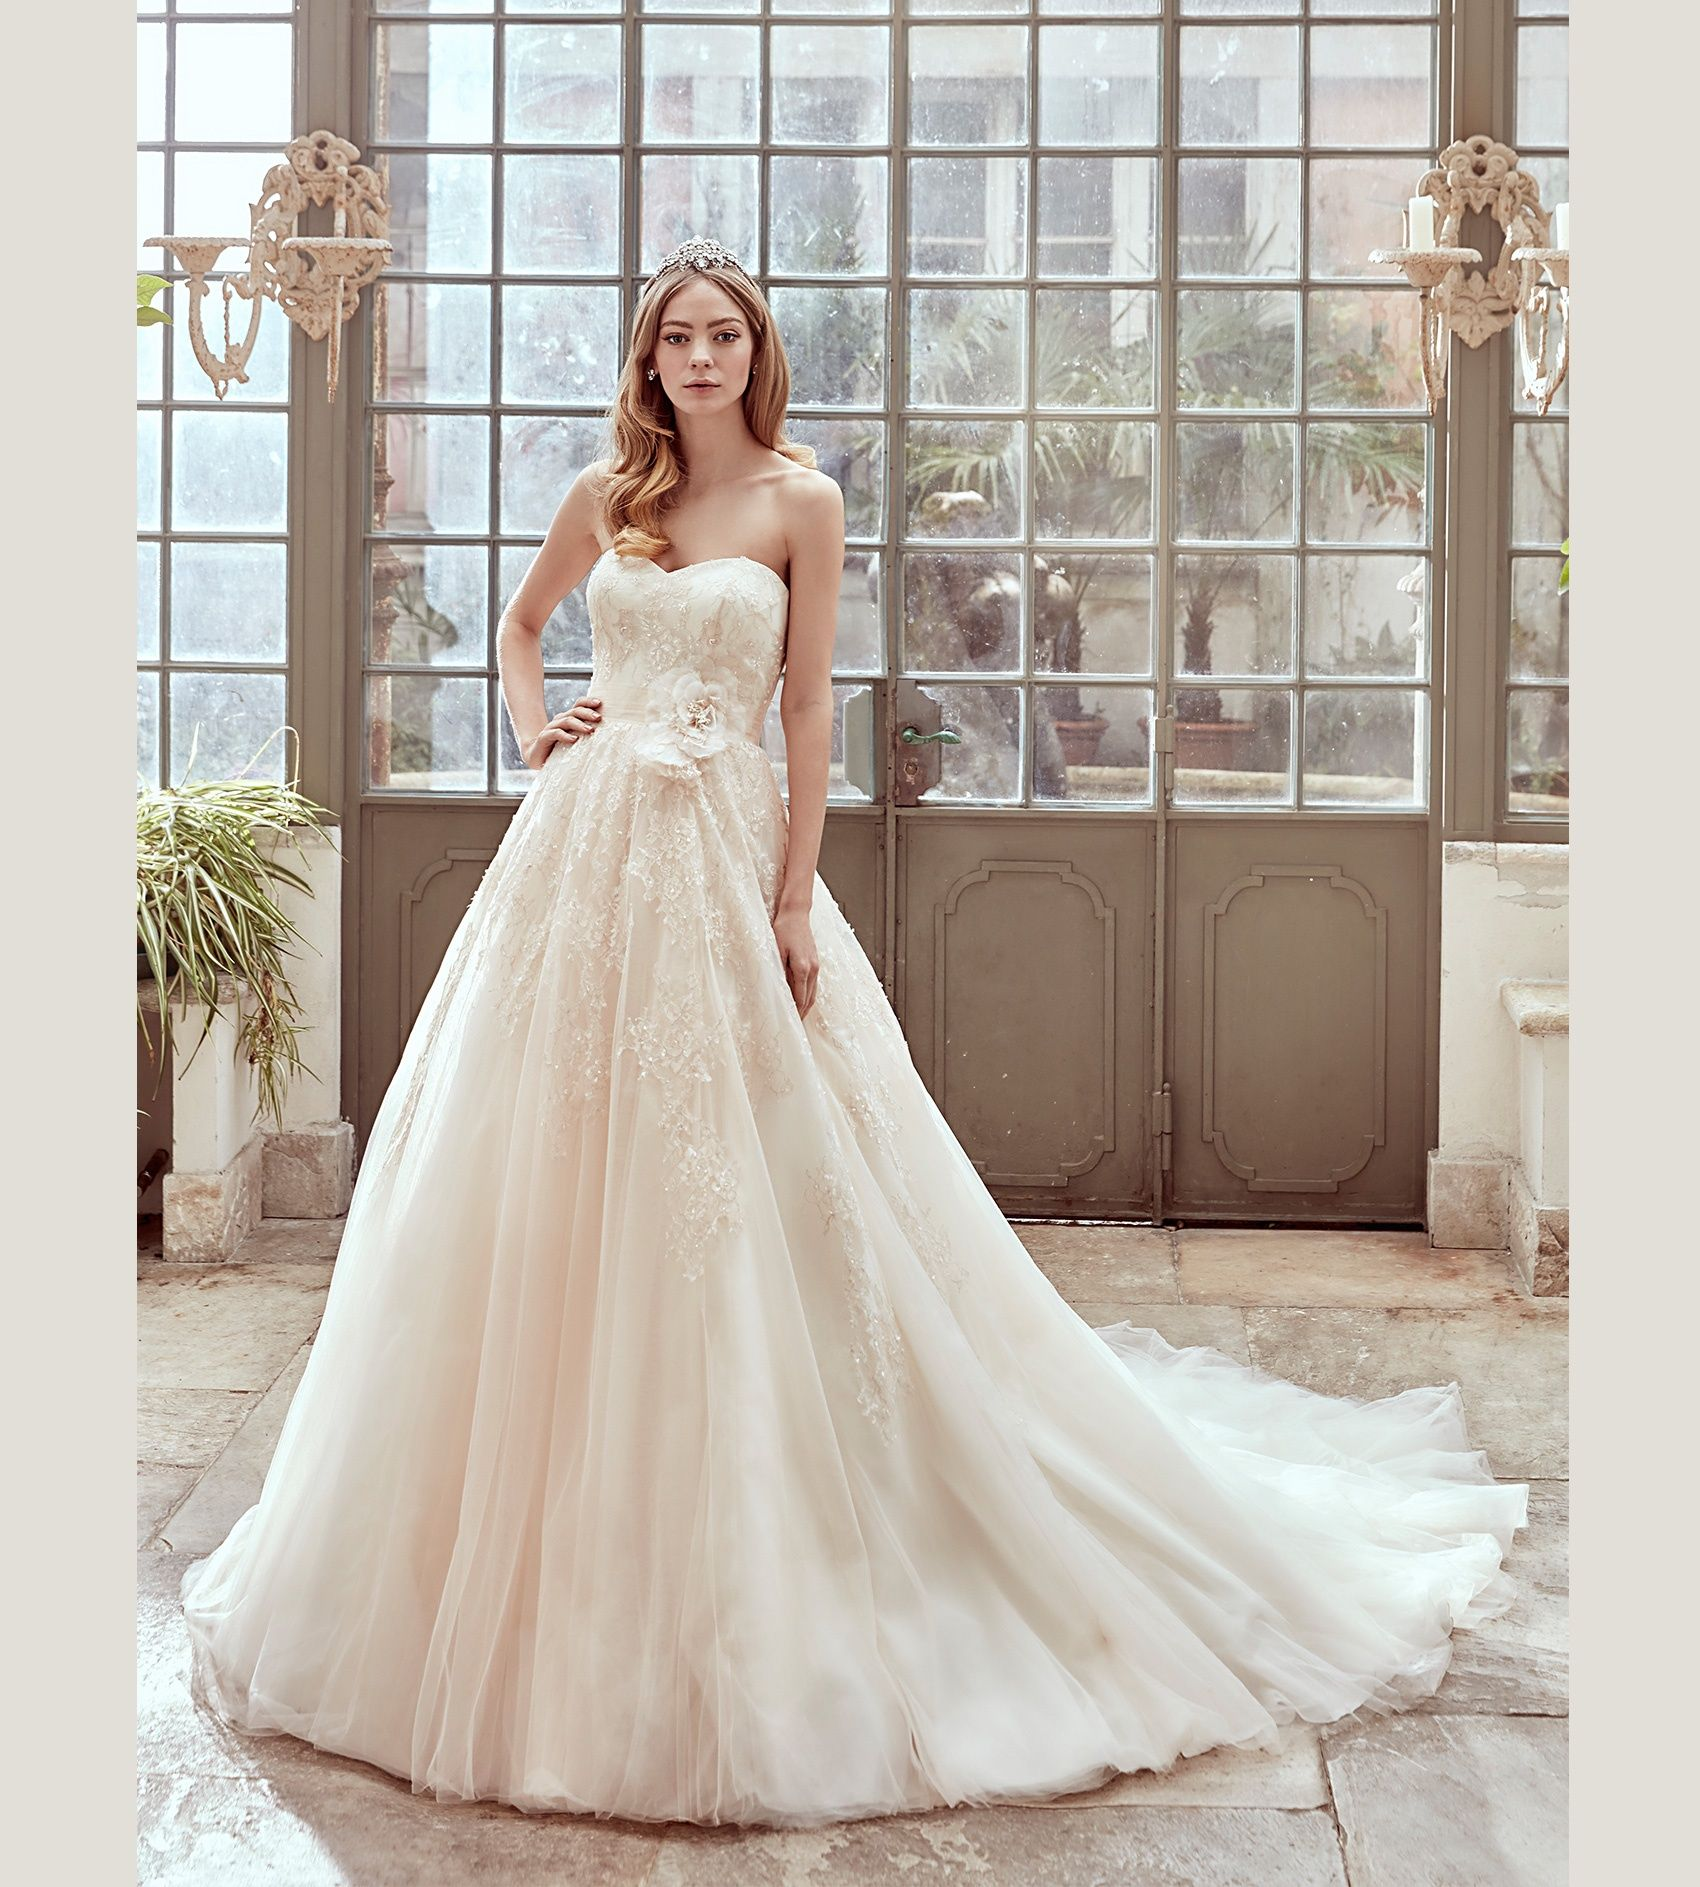 Pin On Wedding Dresses And Ideas